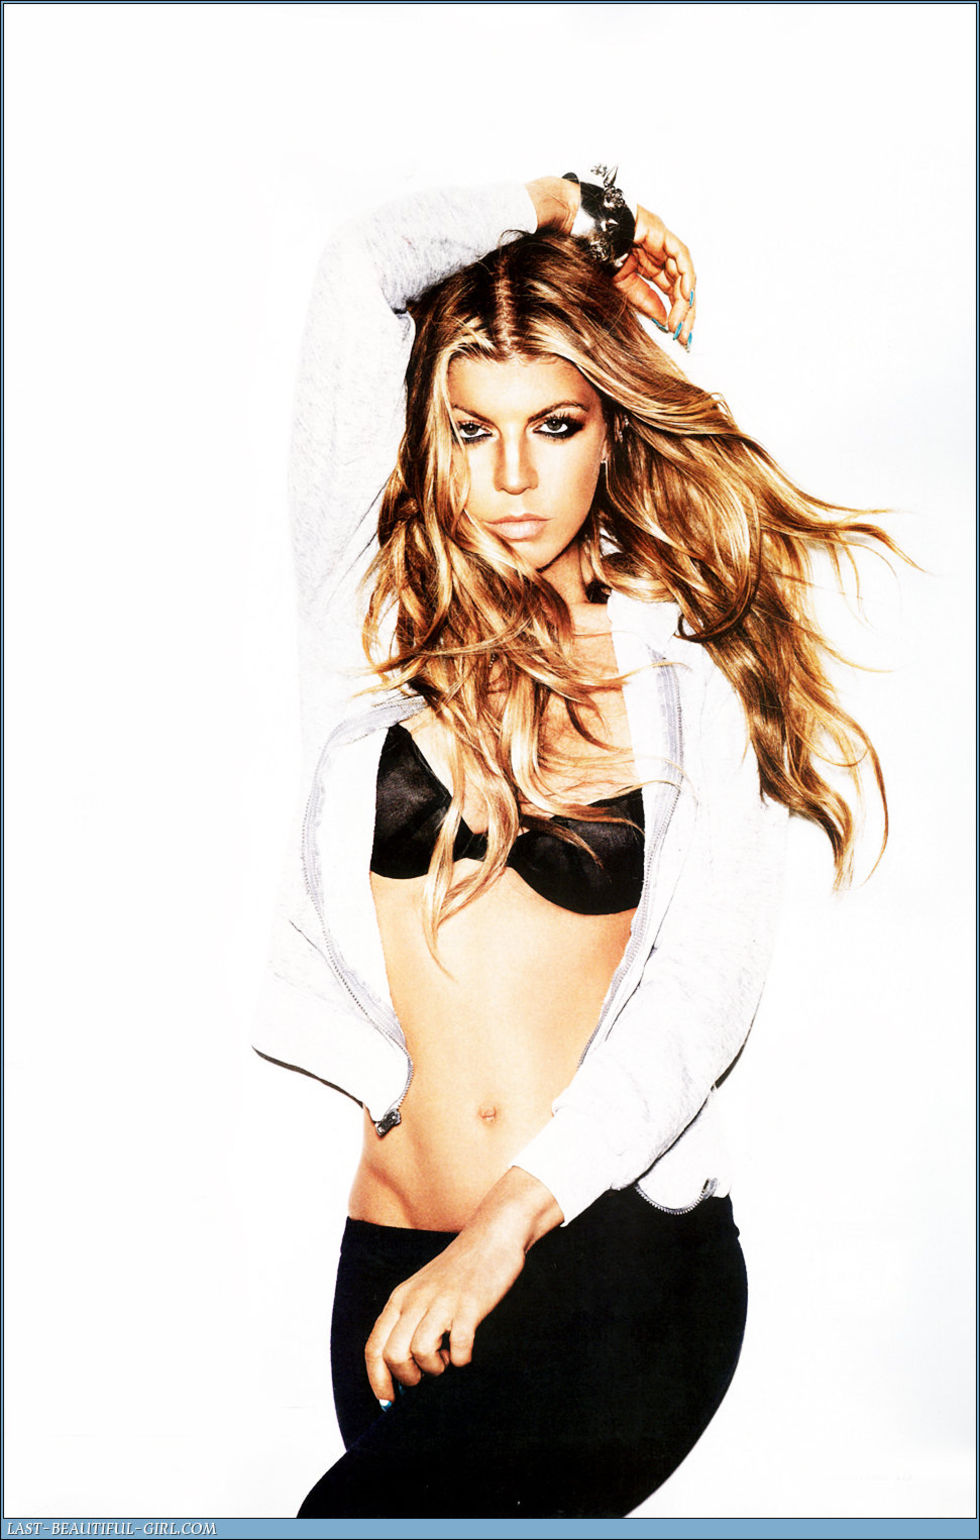 fergie-blender-magazine-januaryfebruary-2008-hq-scans-01